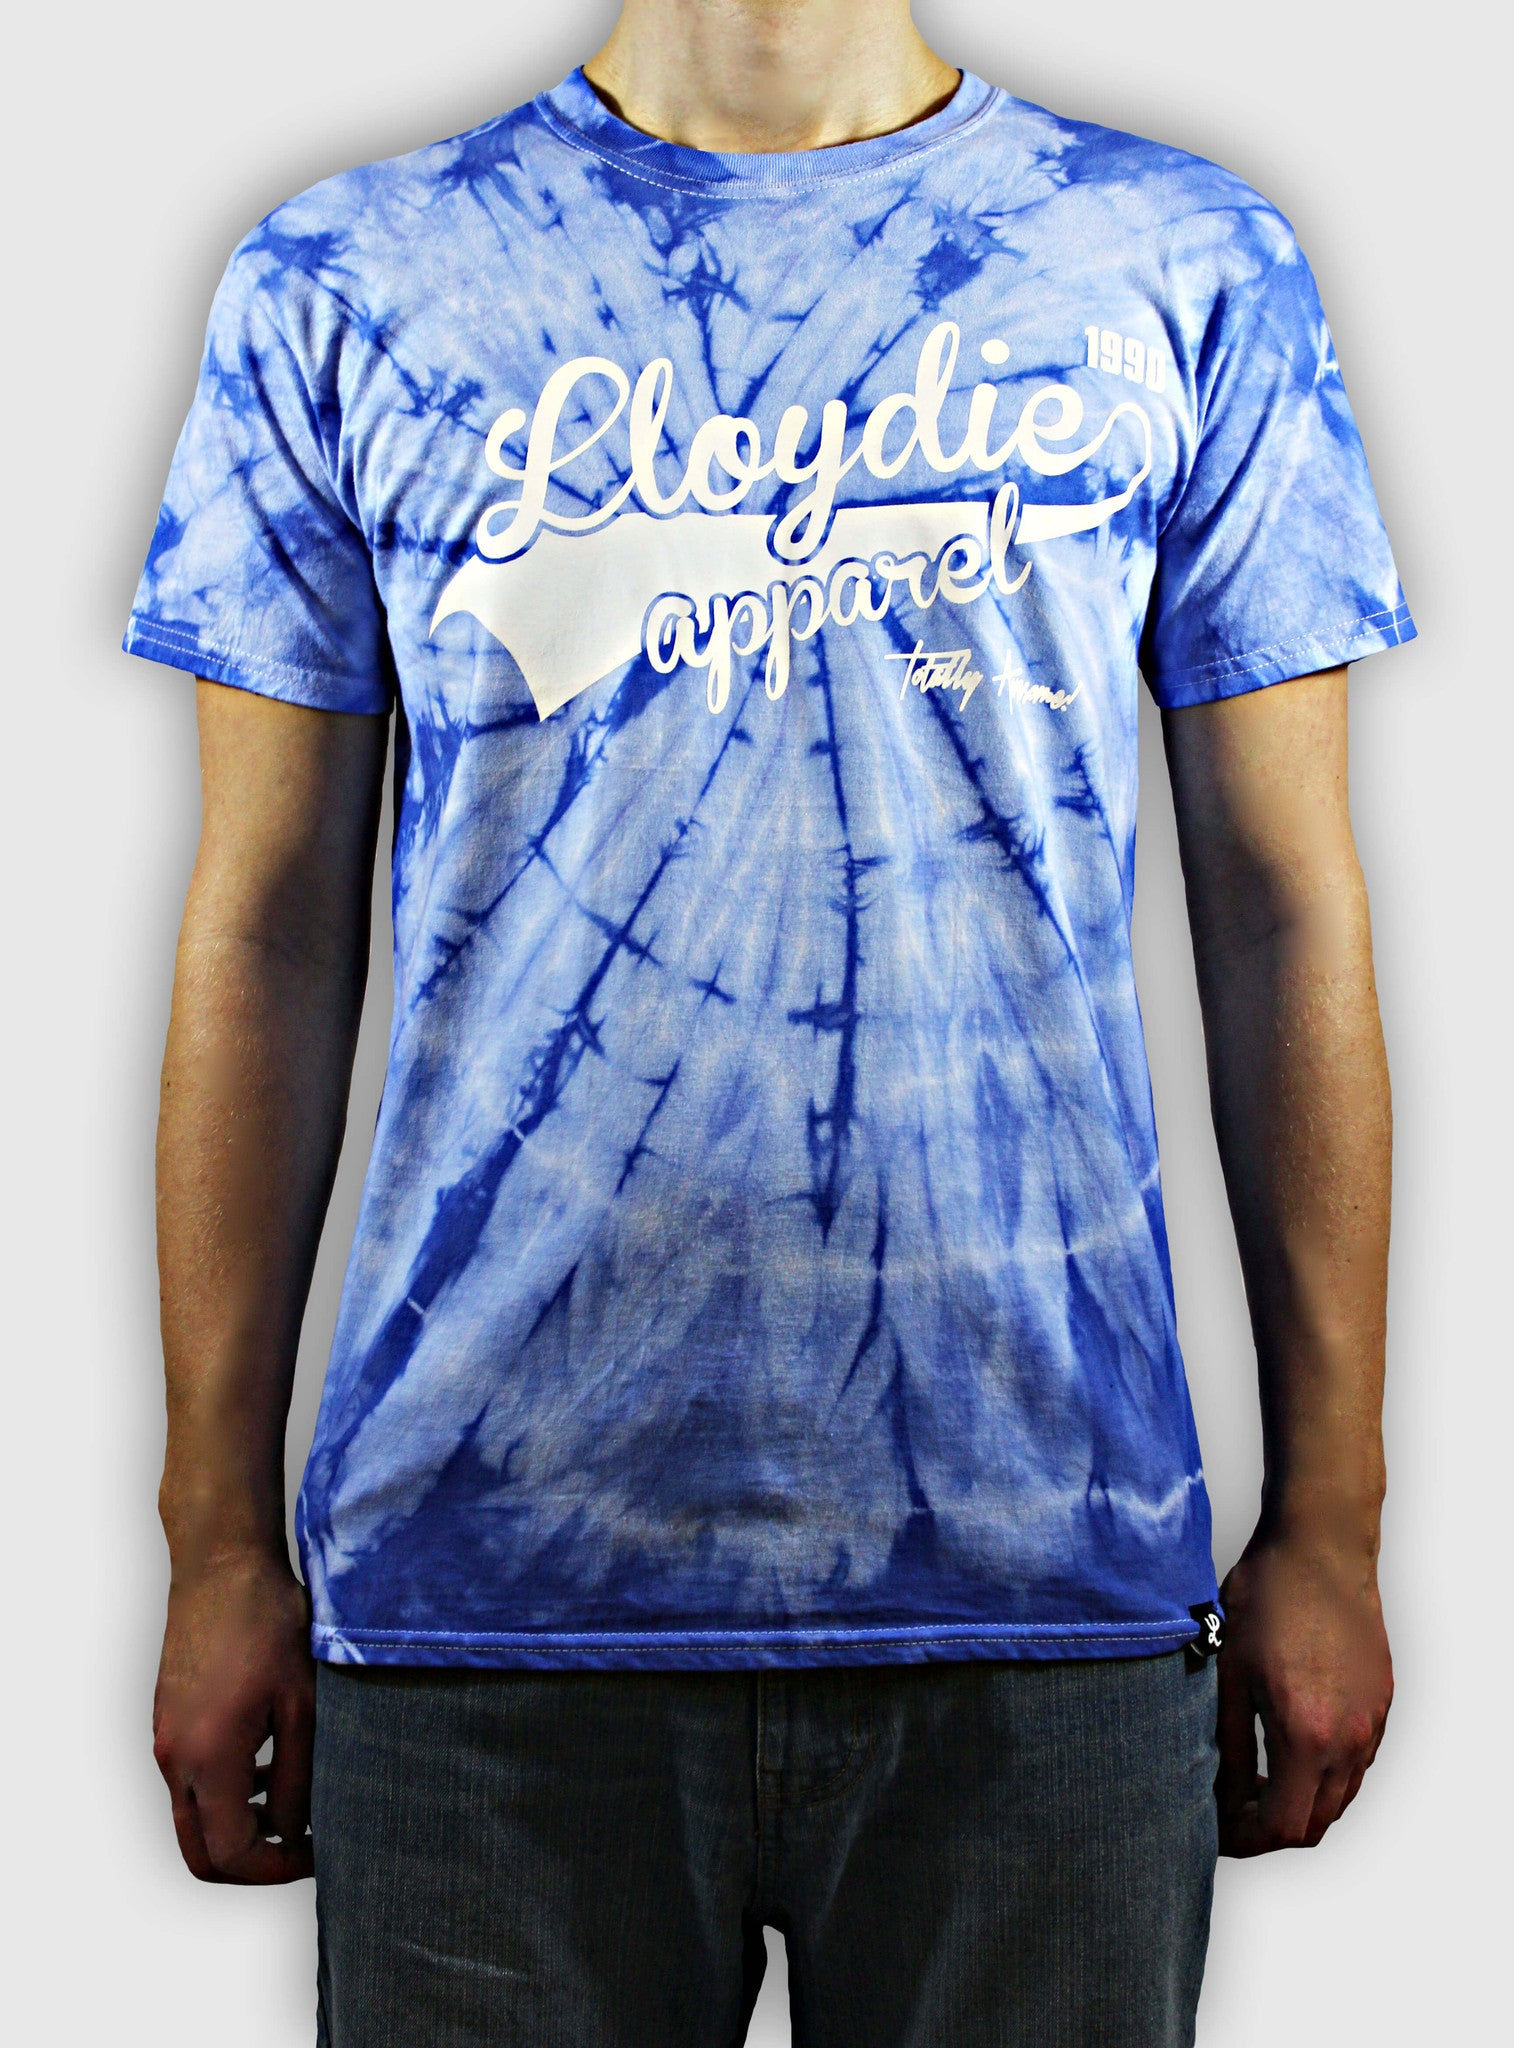 blue tiedye tshirt on body